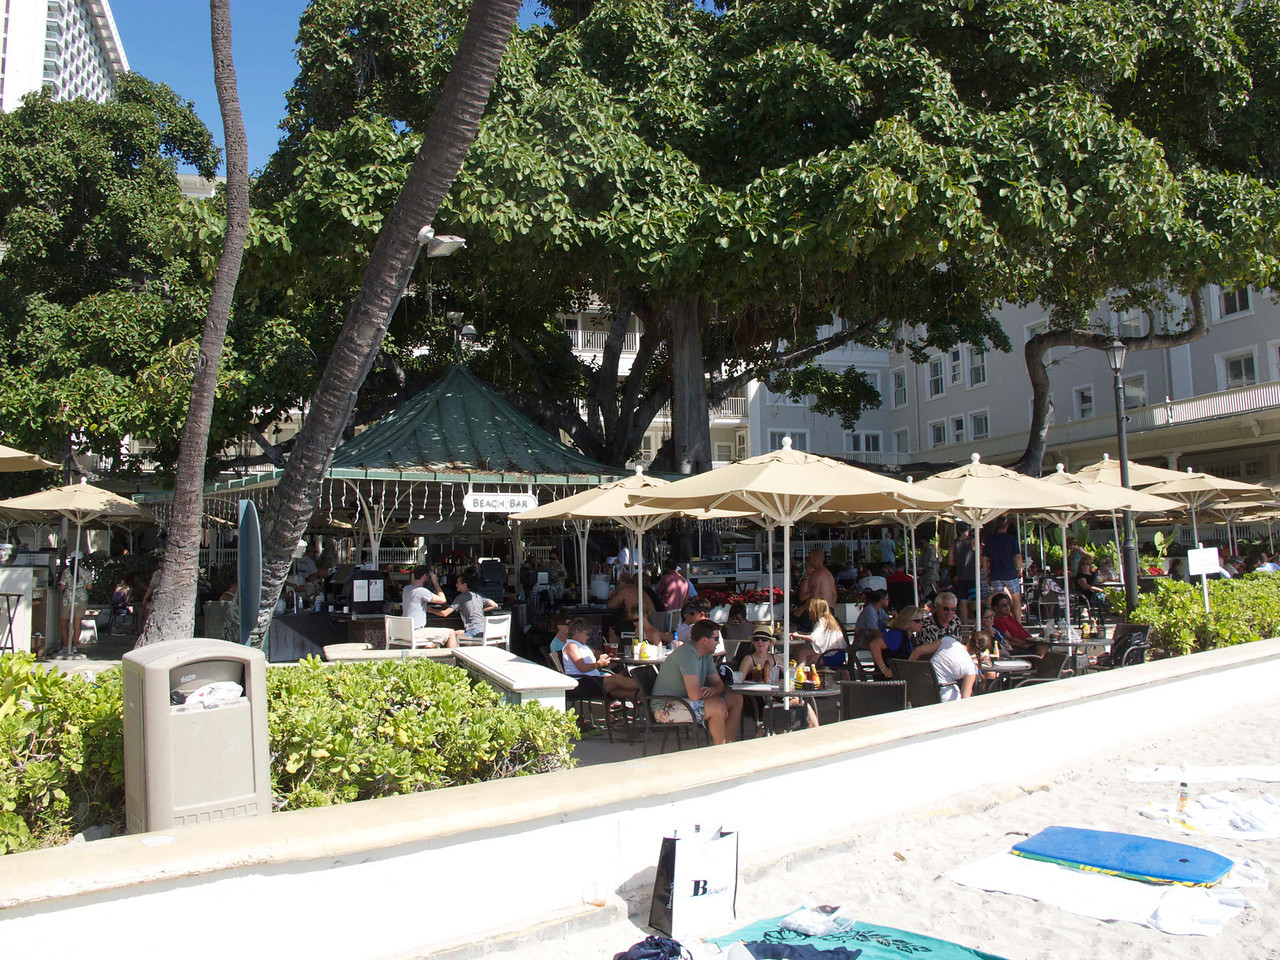 The banyon tree at the Beach Bar was deliciously shady, and the food was deliciously, er, delicious.